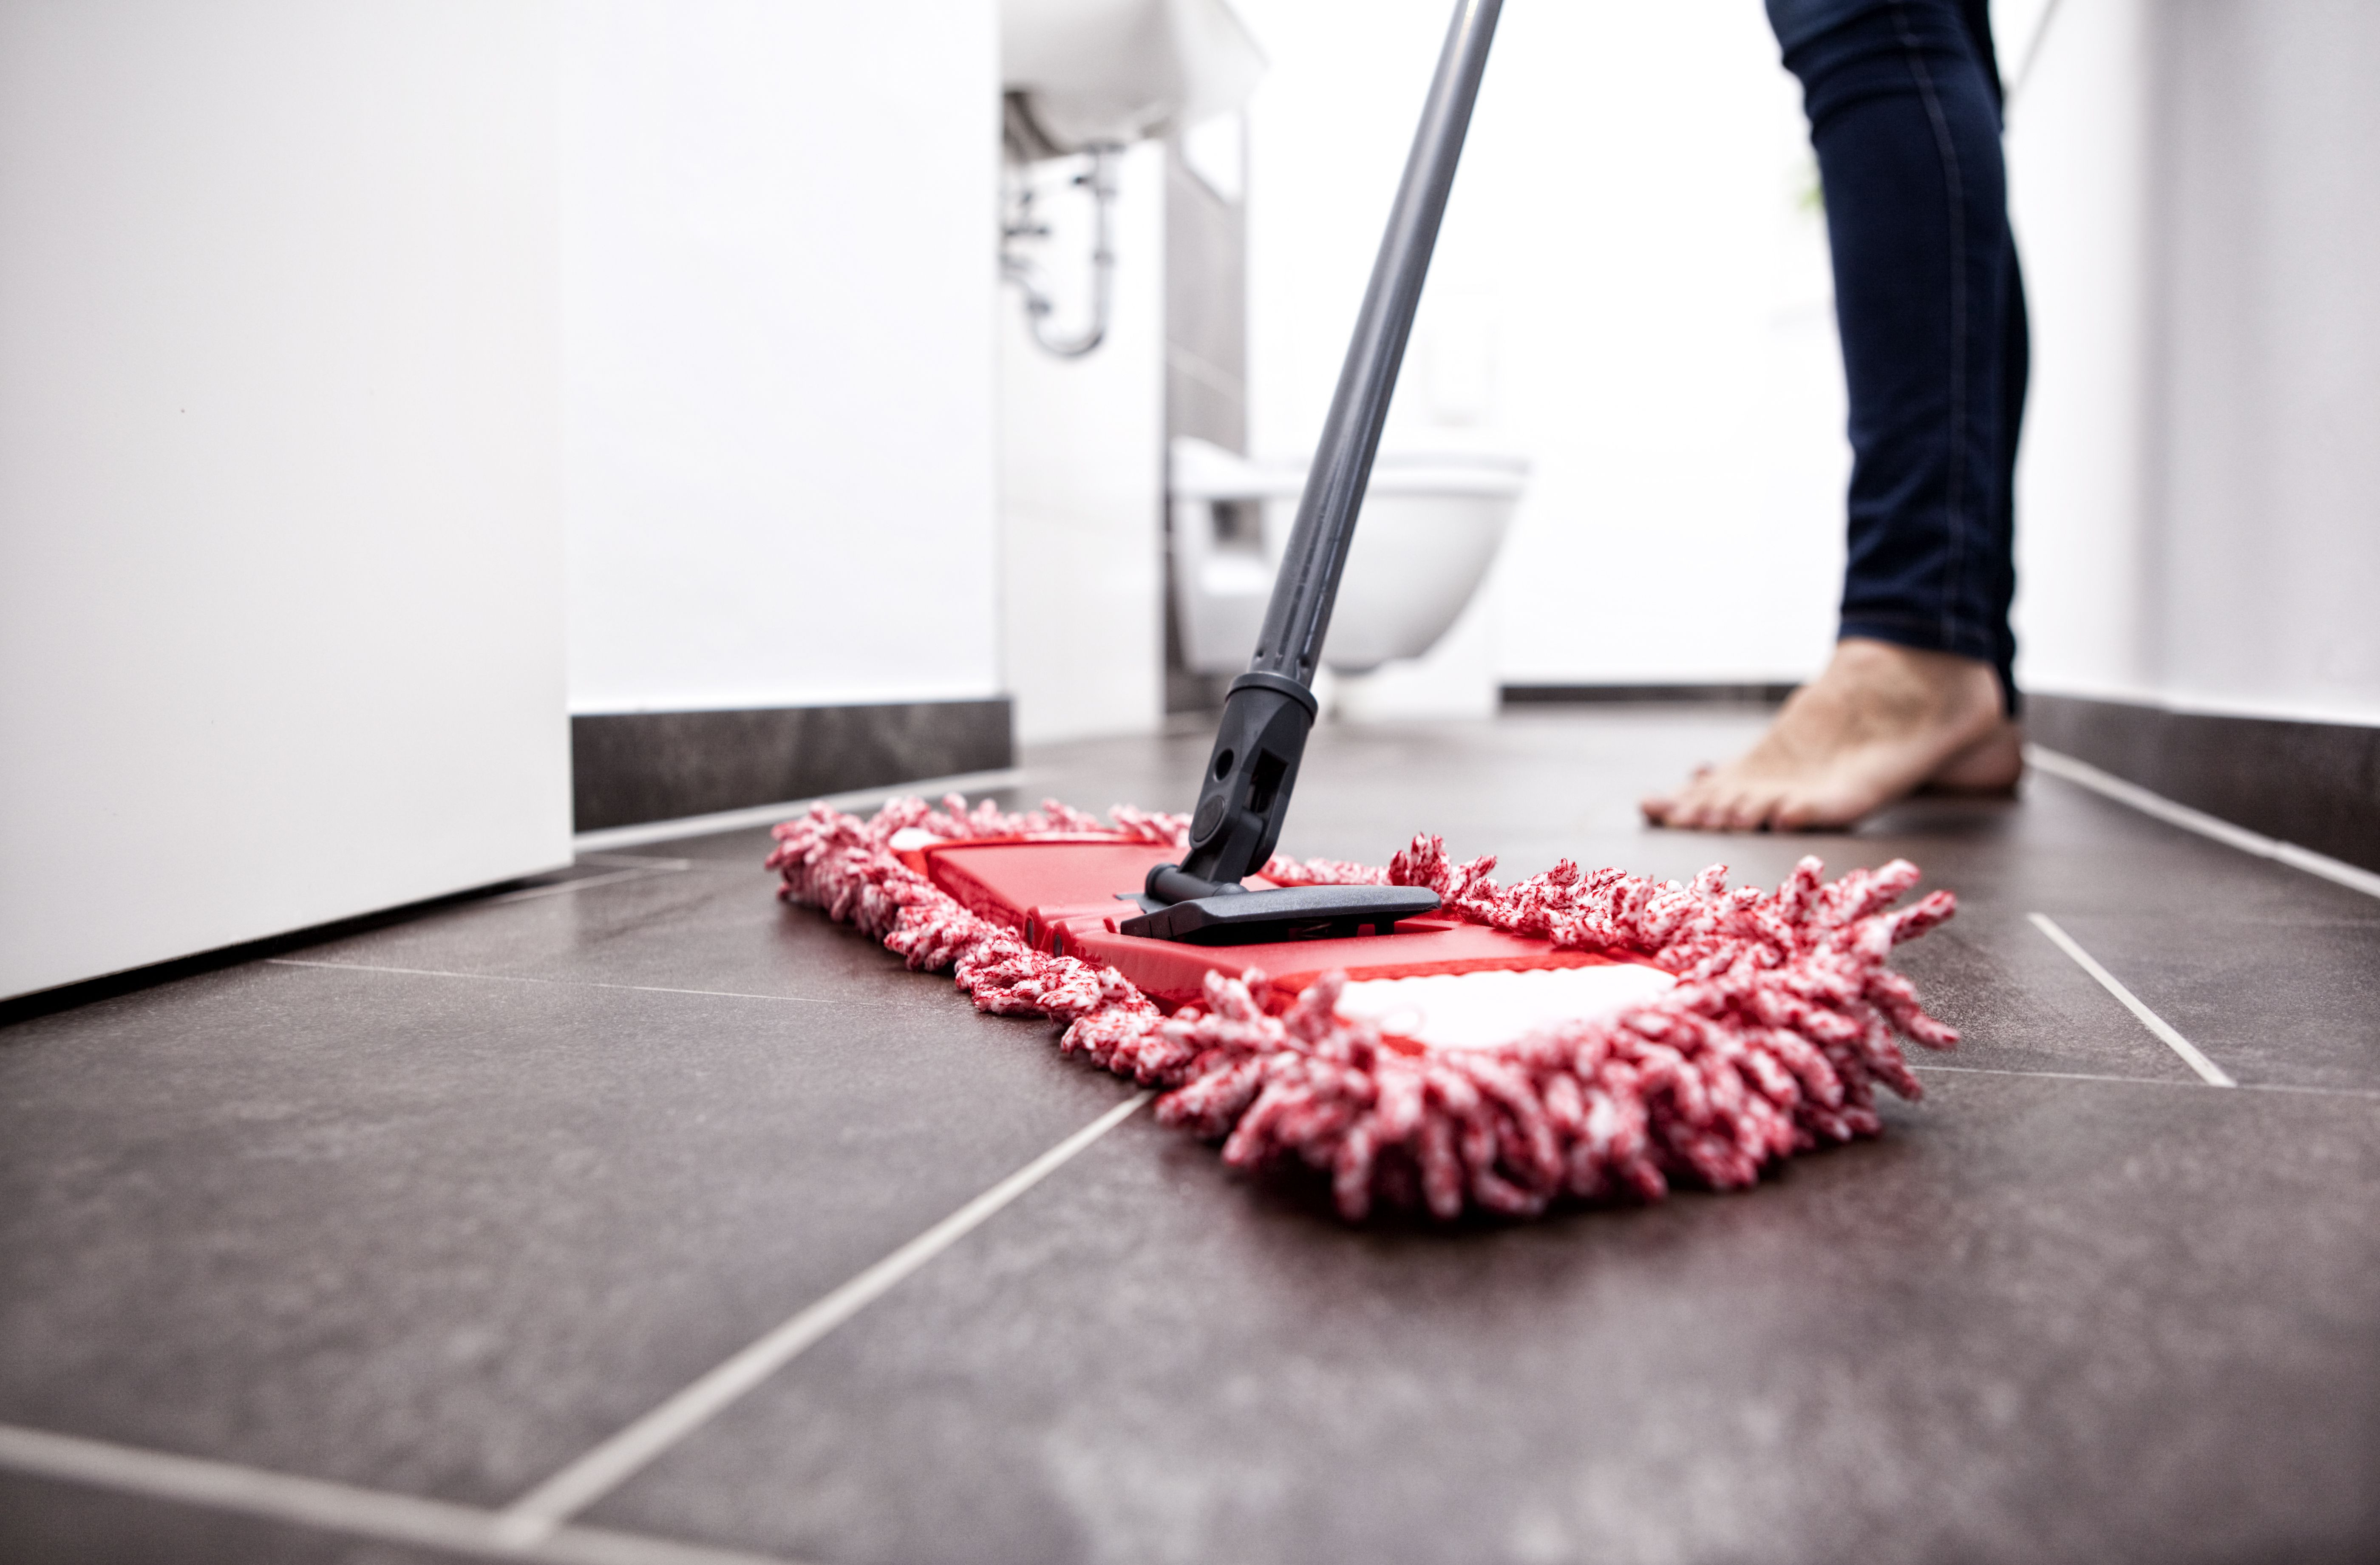 hardwood floor vacuum and steamer of what to know about cleaning self adhesive floor tiles inside woman wiping the floor in bathroom 588494491 5a70f8fe43a1030037b47d0b